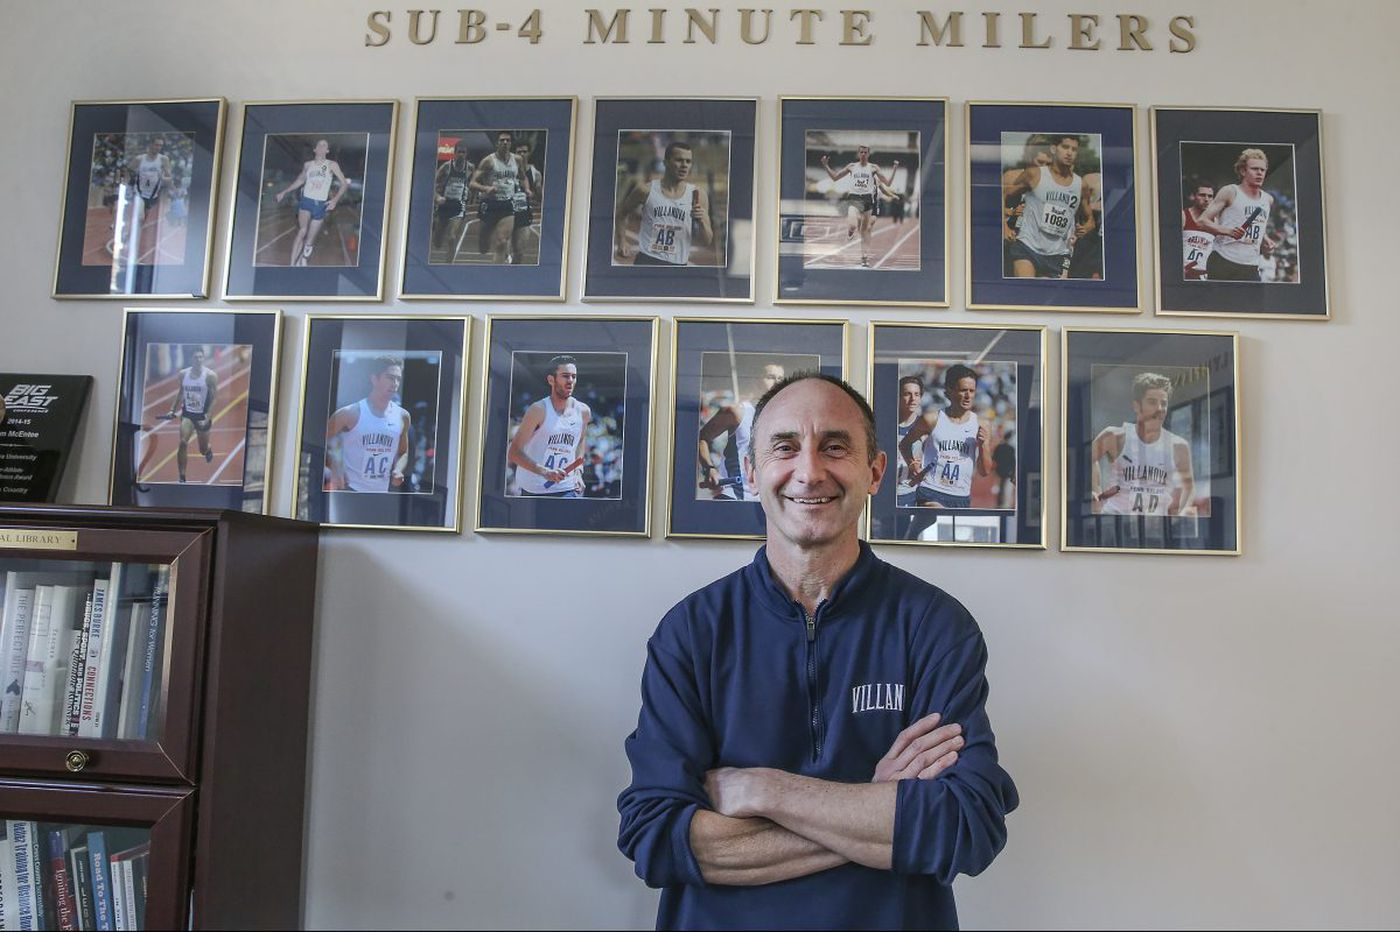 Marcus O'Sullivan has seen it all at the Penn Relays, but pressure on Villanova doesn't change